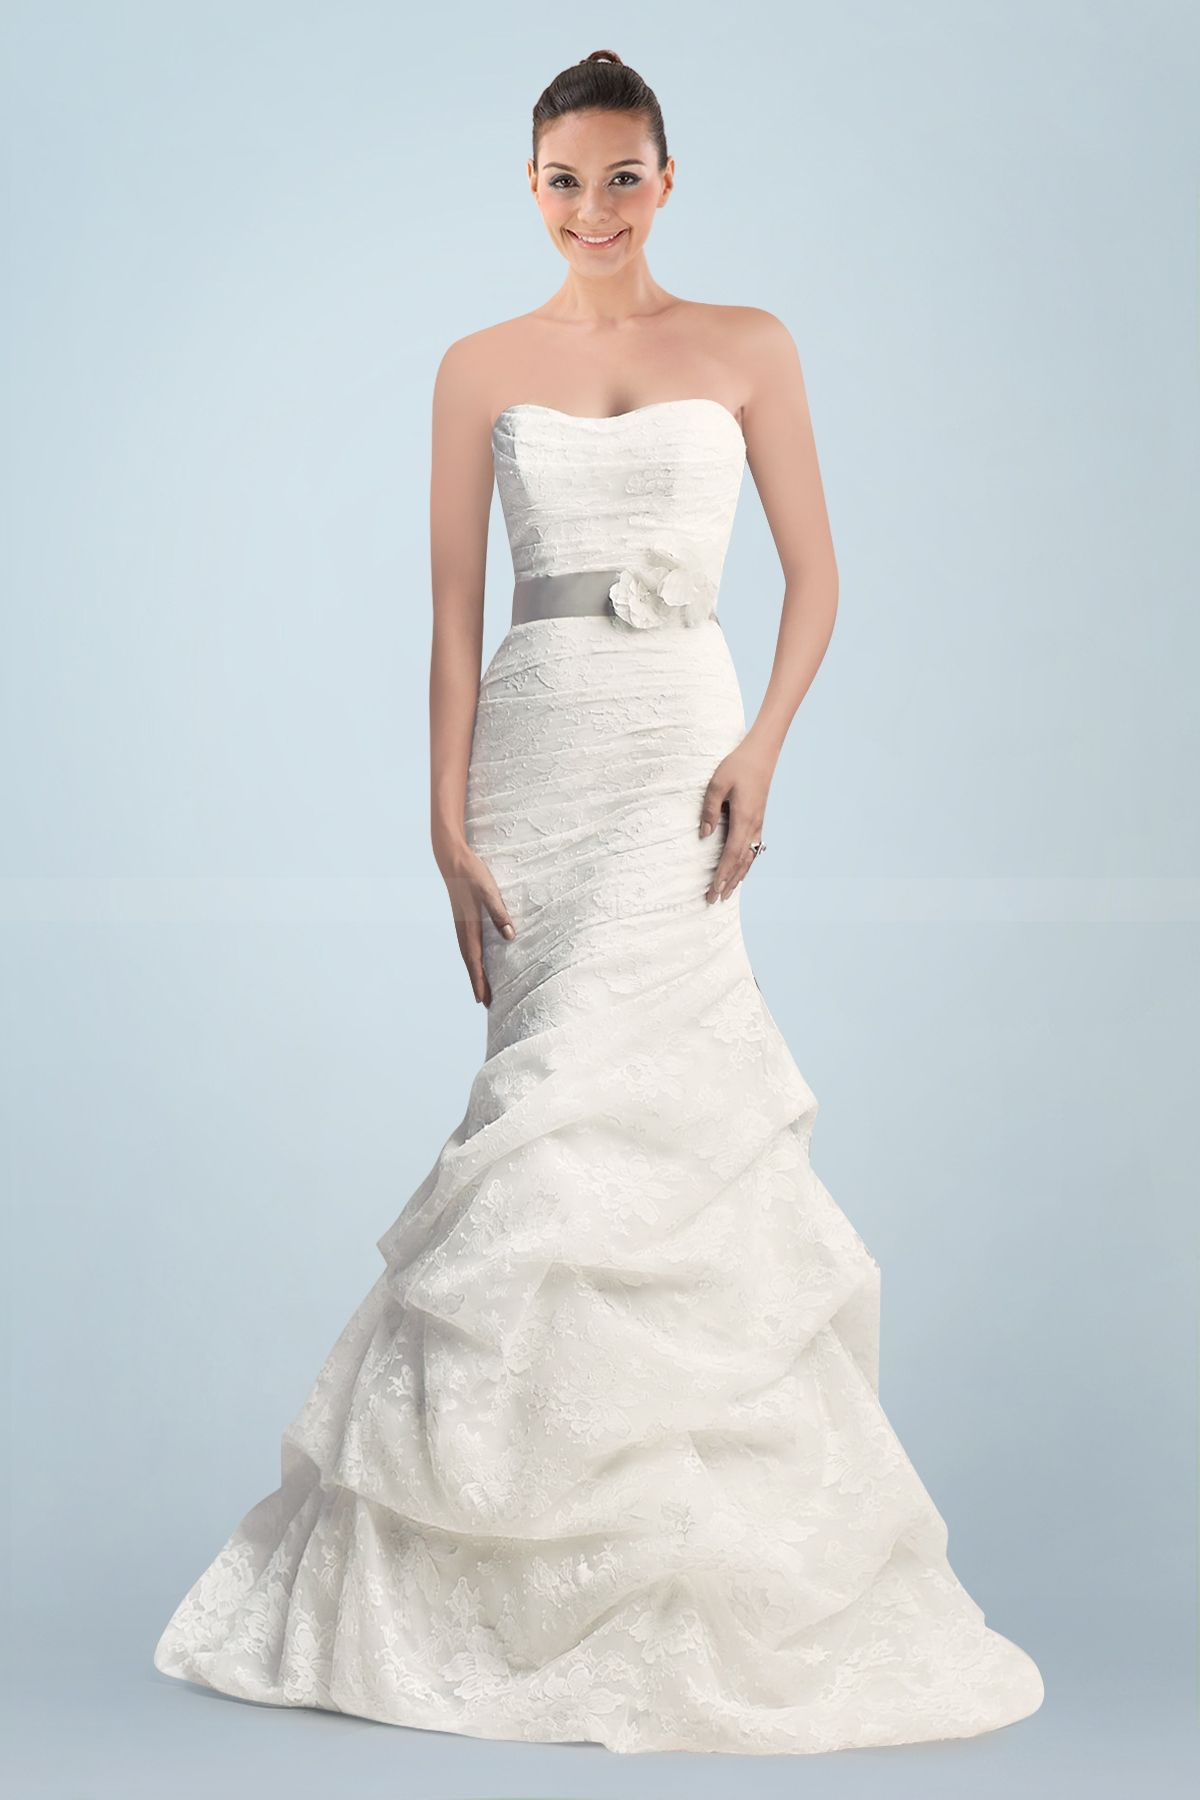 Fabulous lace strapless mermaid wedding gown featuring asymmetrical